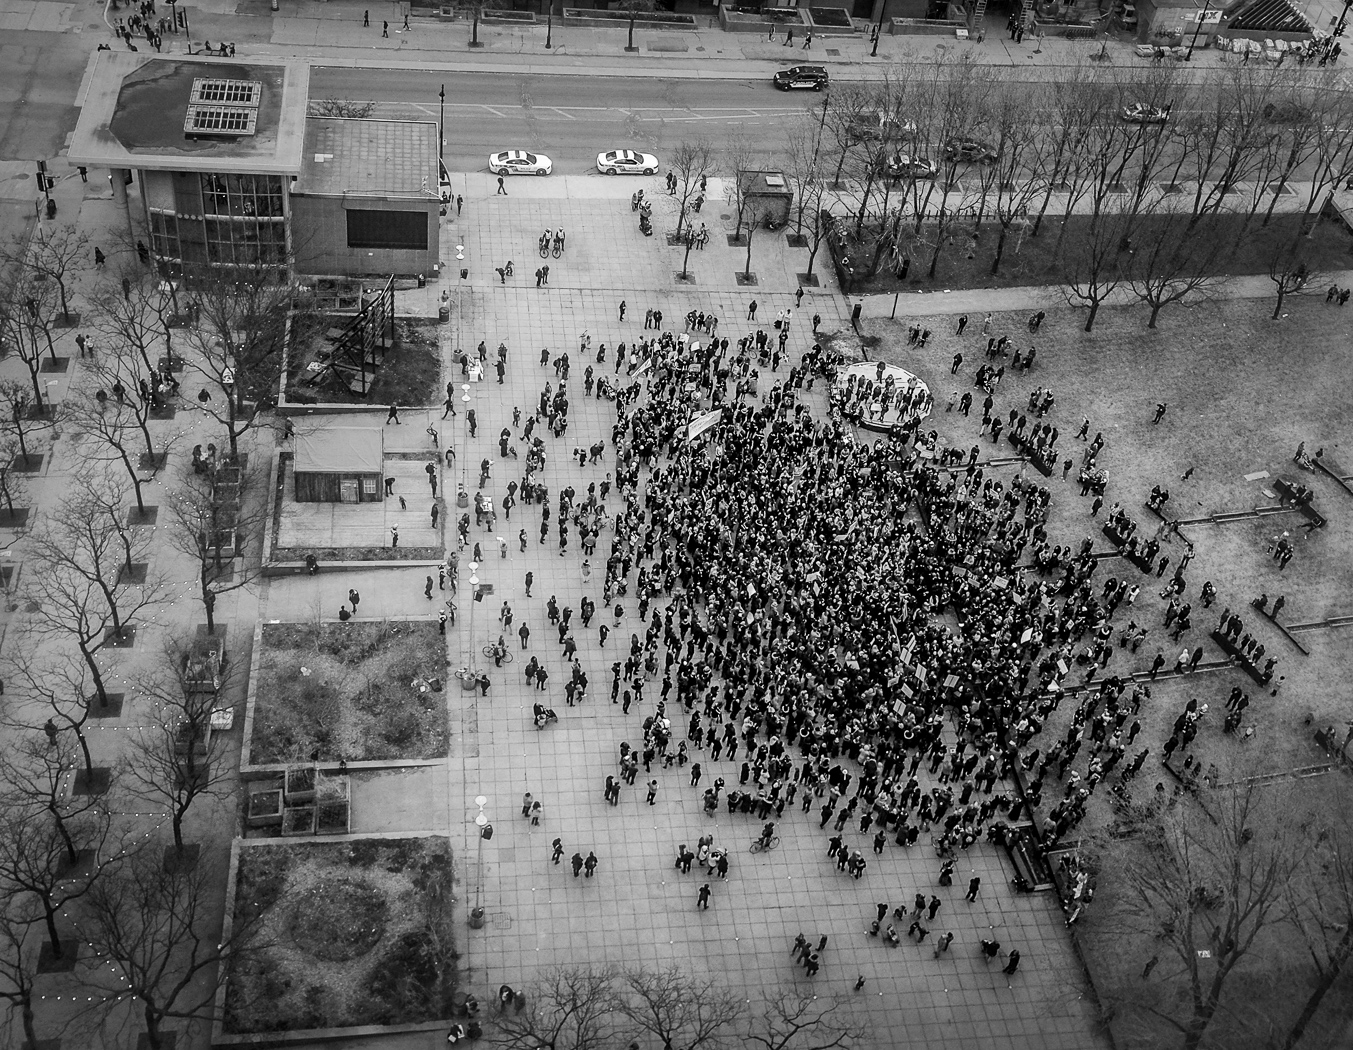 hedy bach images - Montreal protest - 1